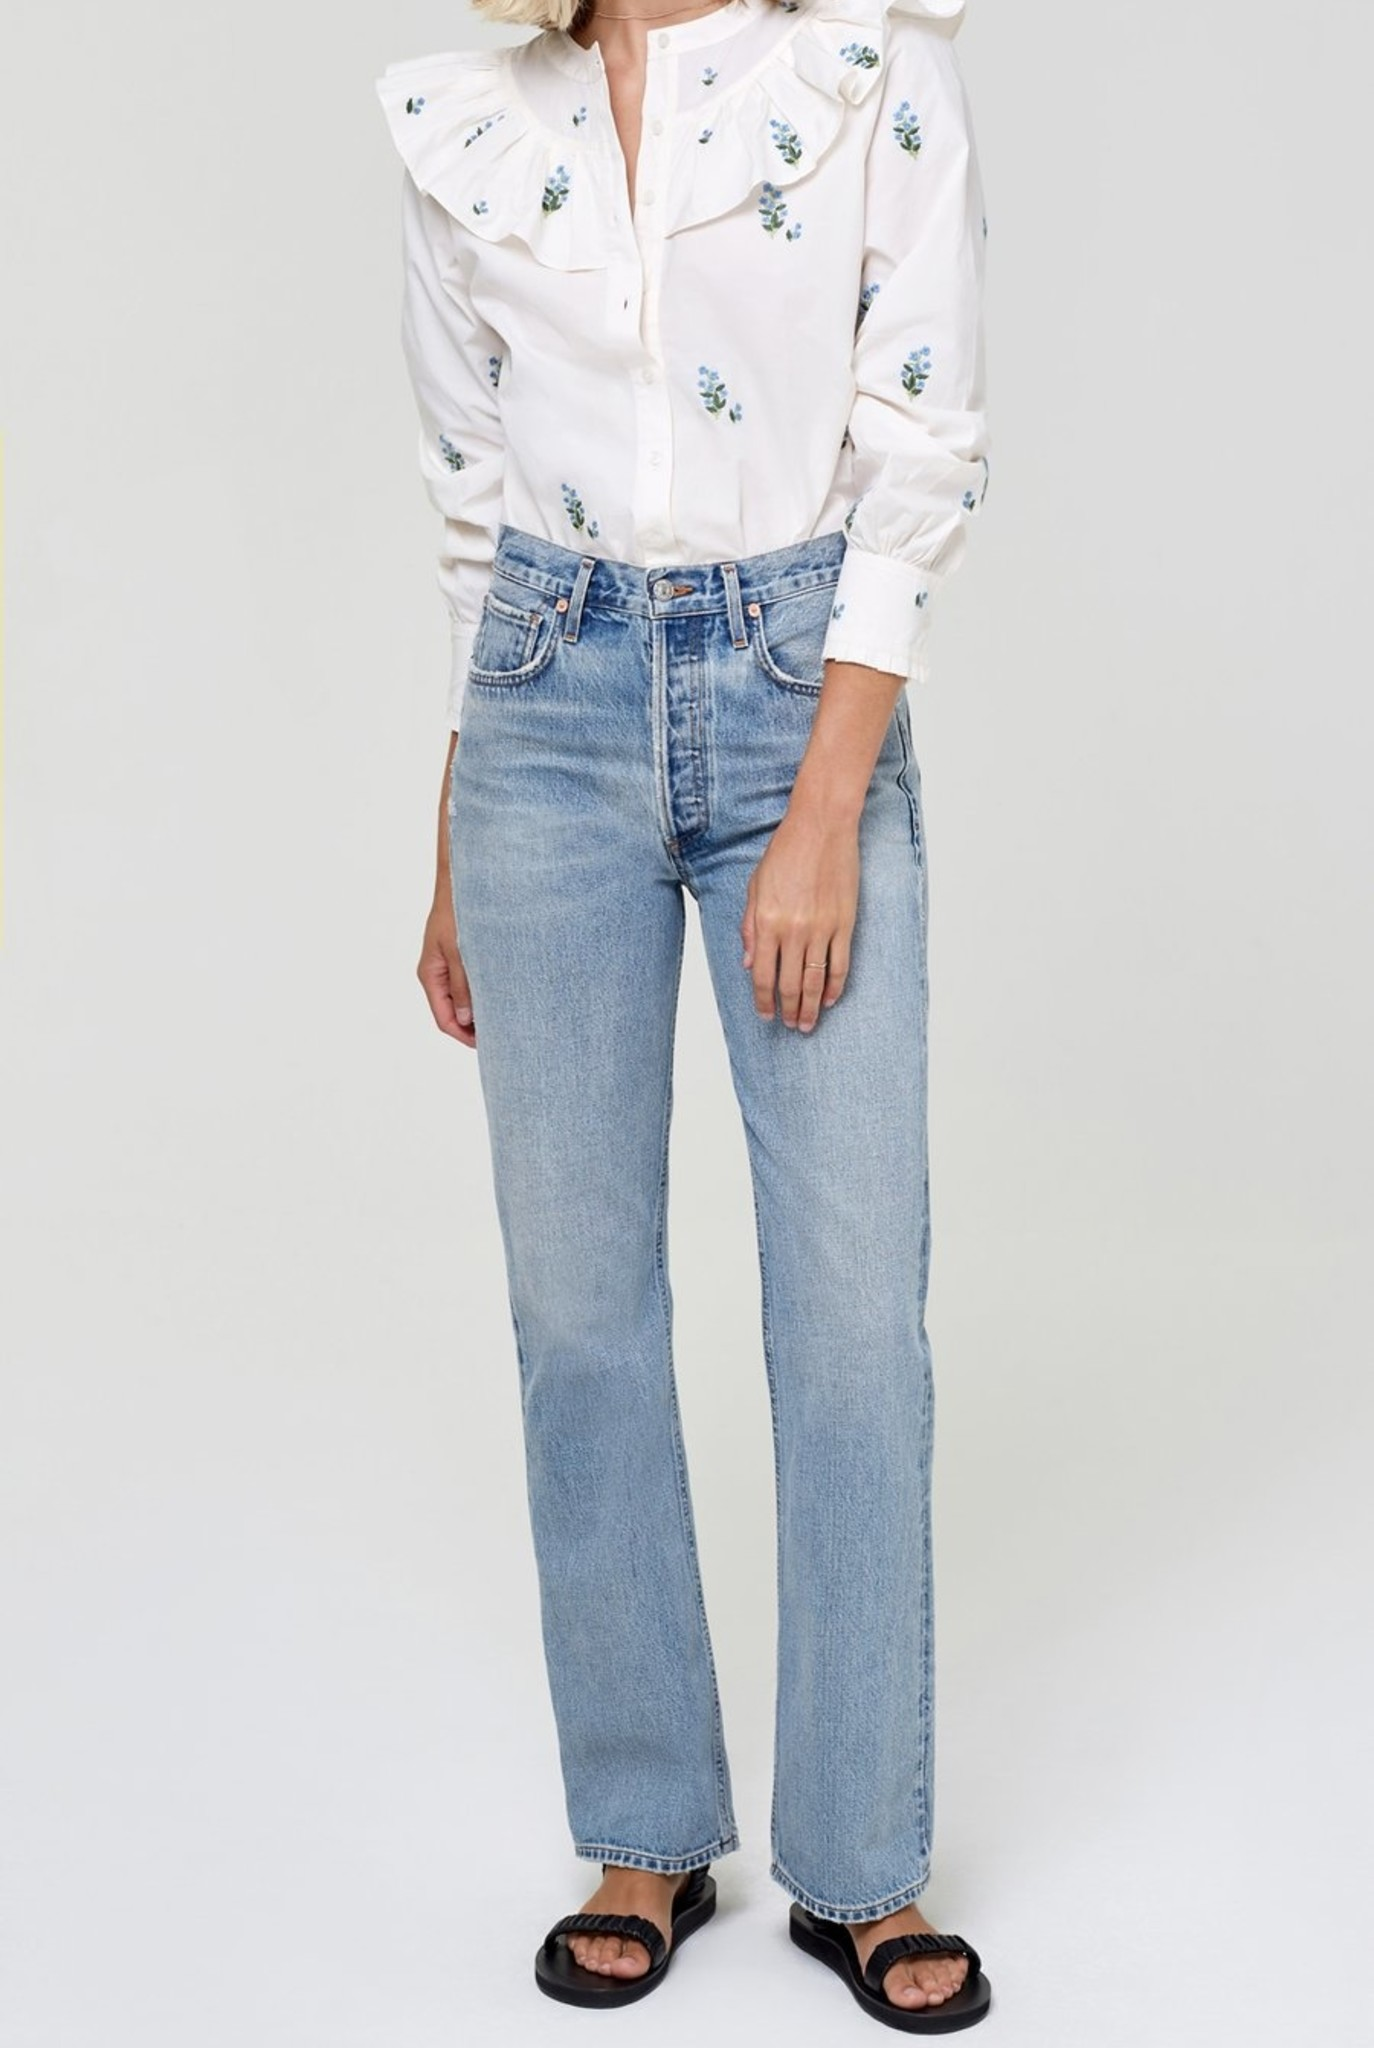 Libby Jeans High Road